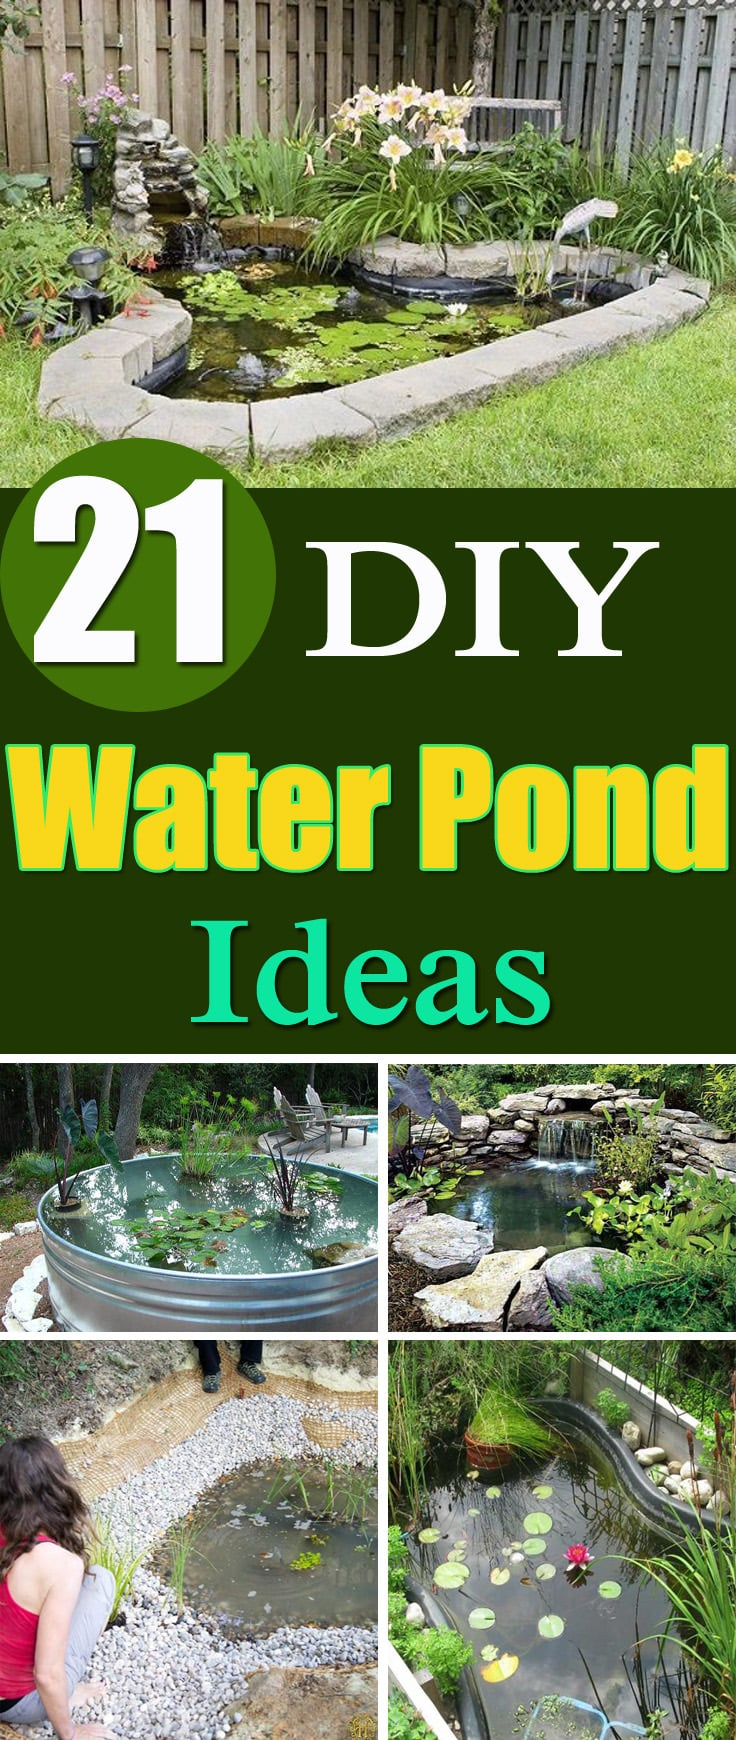 21 diy water pond ideas diy water gardens for backyards for Diy garden pond ideas